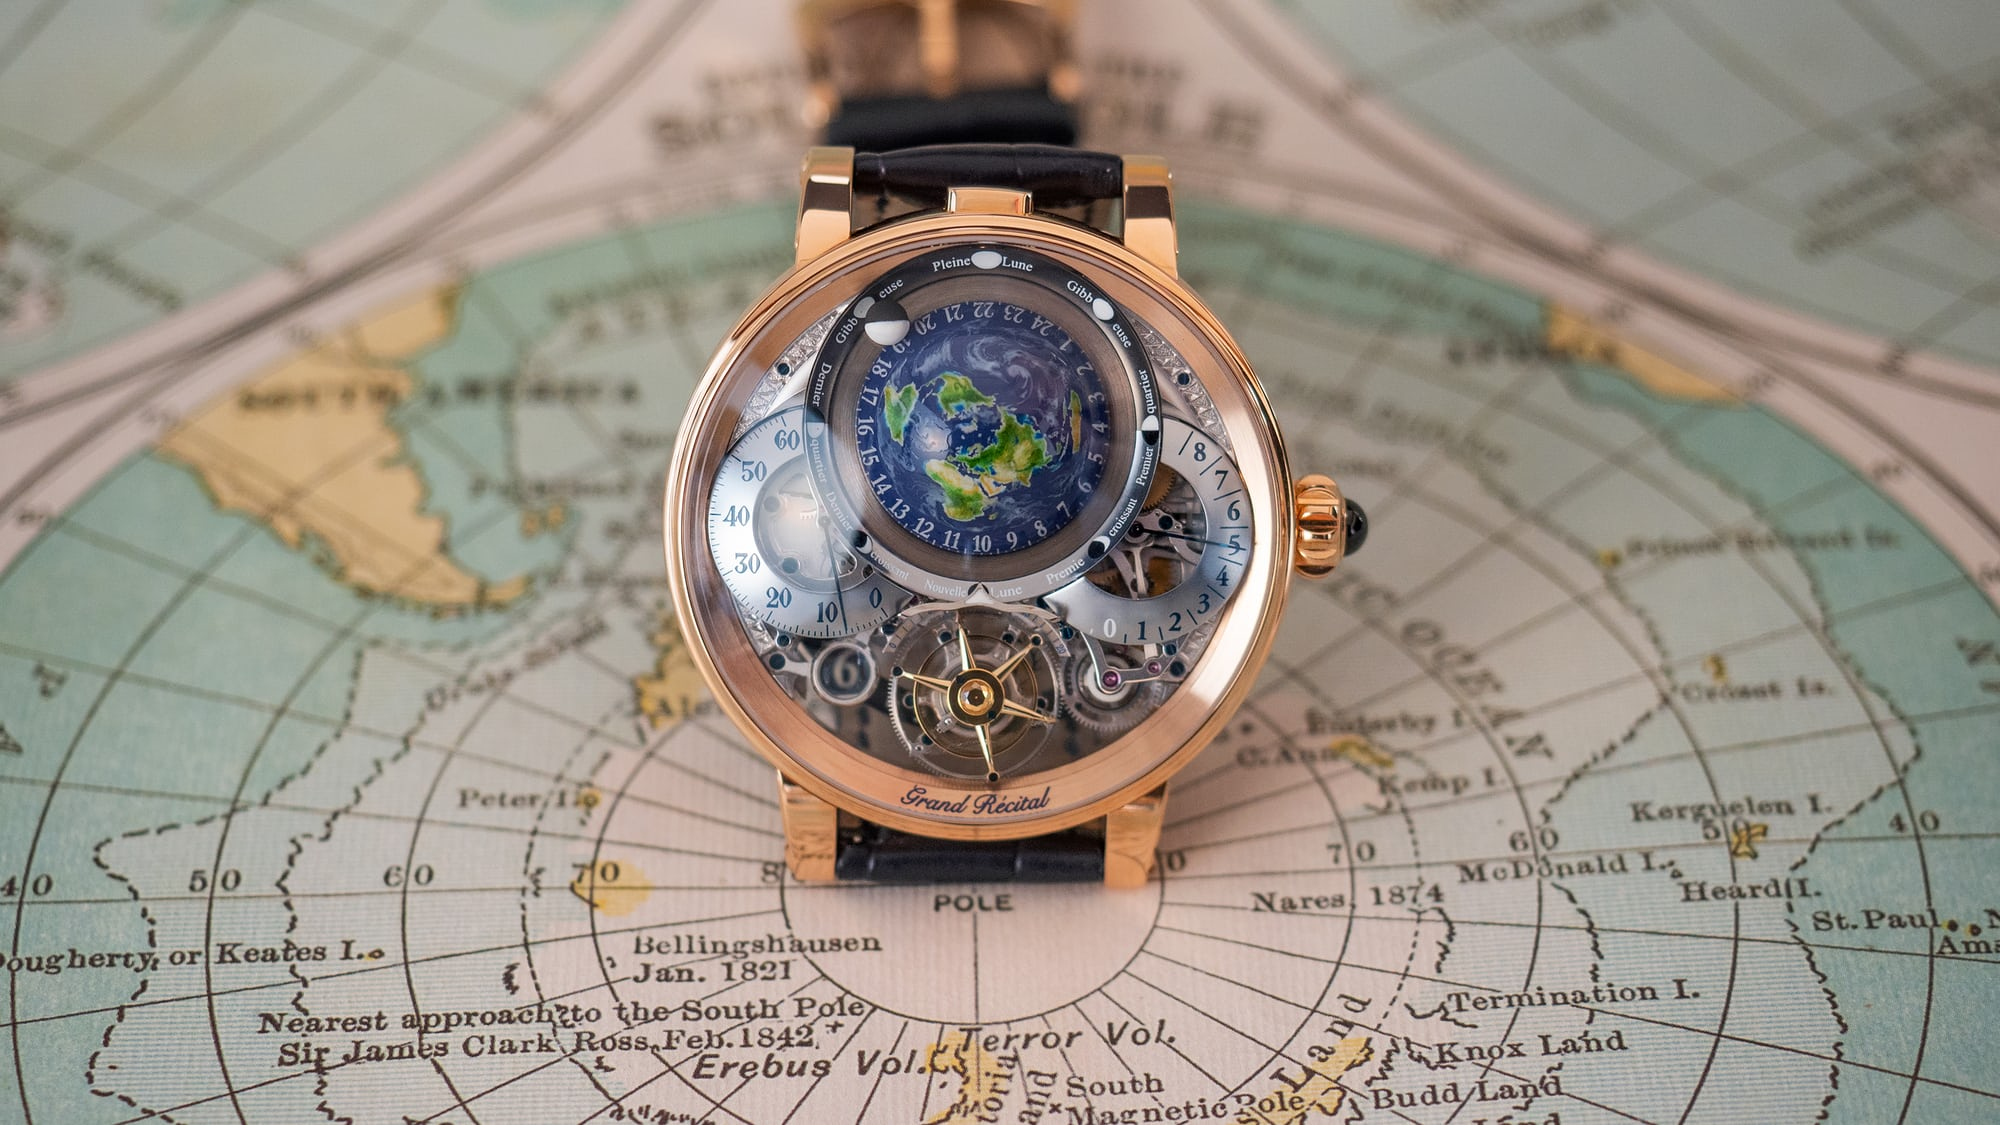 Breaking News: The Bovet Récital 22 Grand Récital Takes Home The Aiguille d'Or At The 2018 GPGH Awards hero